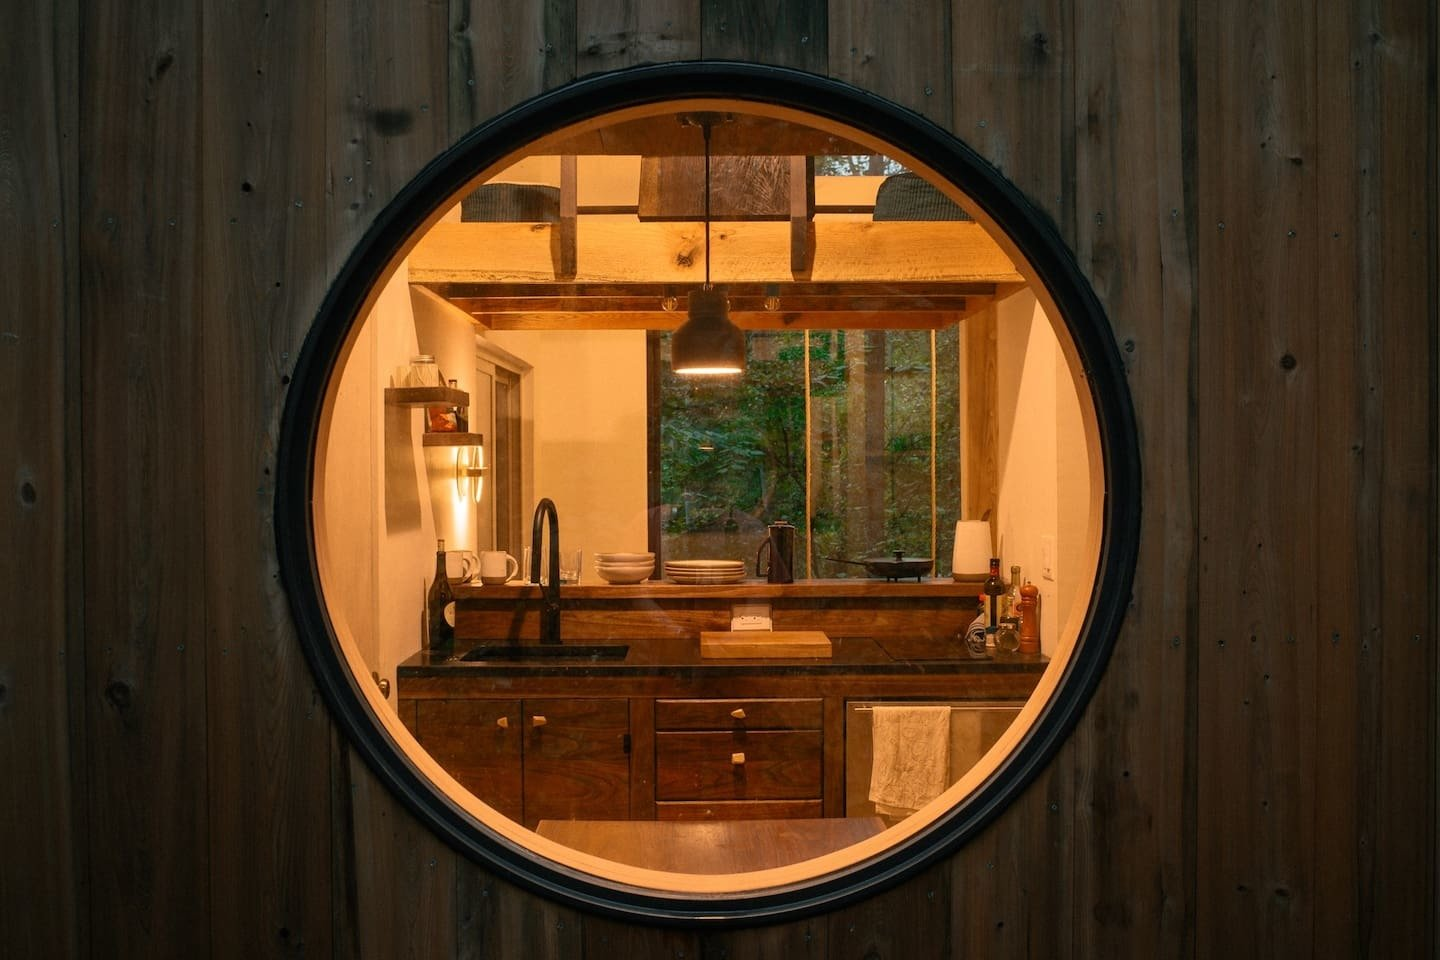 """Windows, Picture Window Type, and Wood Inspired by a homesteading commune he documented in Western North Carolina, photographer Mike Belleme built the Nook, a minimalist retreat in the woods that draws from both Japanese and Scandinavian design. He foraged much of the wood for the 400-square-foot cabin. """"Every kind of wood has a certain mood and personality,"""" he says. The exterior features an entranceway of oak blackened in the traditional Japanese method known as shou sugi ban.  Photo 2 of 11 in A Tiny Cabin in North Carolina Is an Enchanting Mix of Japanese and Scandinavian Style"""